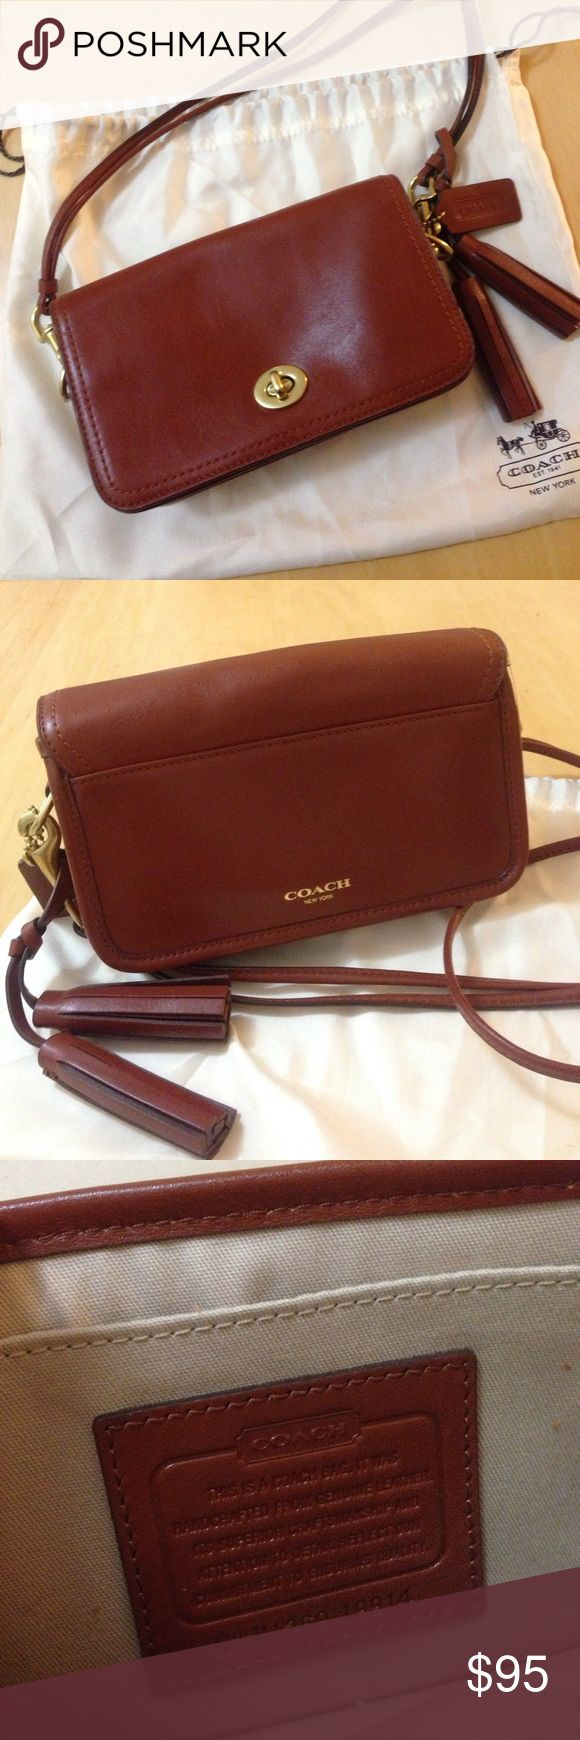 "Coach legacy penny mini crossbody purse Coach legacy penny mini crossbody purse in cognac. Gold hardware. 7.75""l, 5""h, 2.25""w. Never worn, like new. Comes with dust bag. A classic--goes with every outfit! Coach Bags Crossbody Bags"